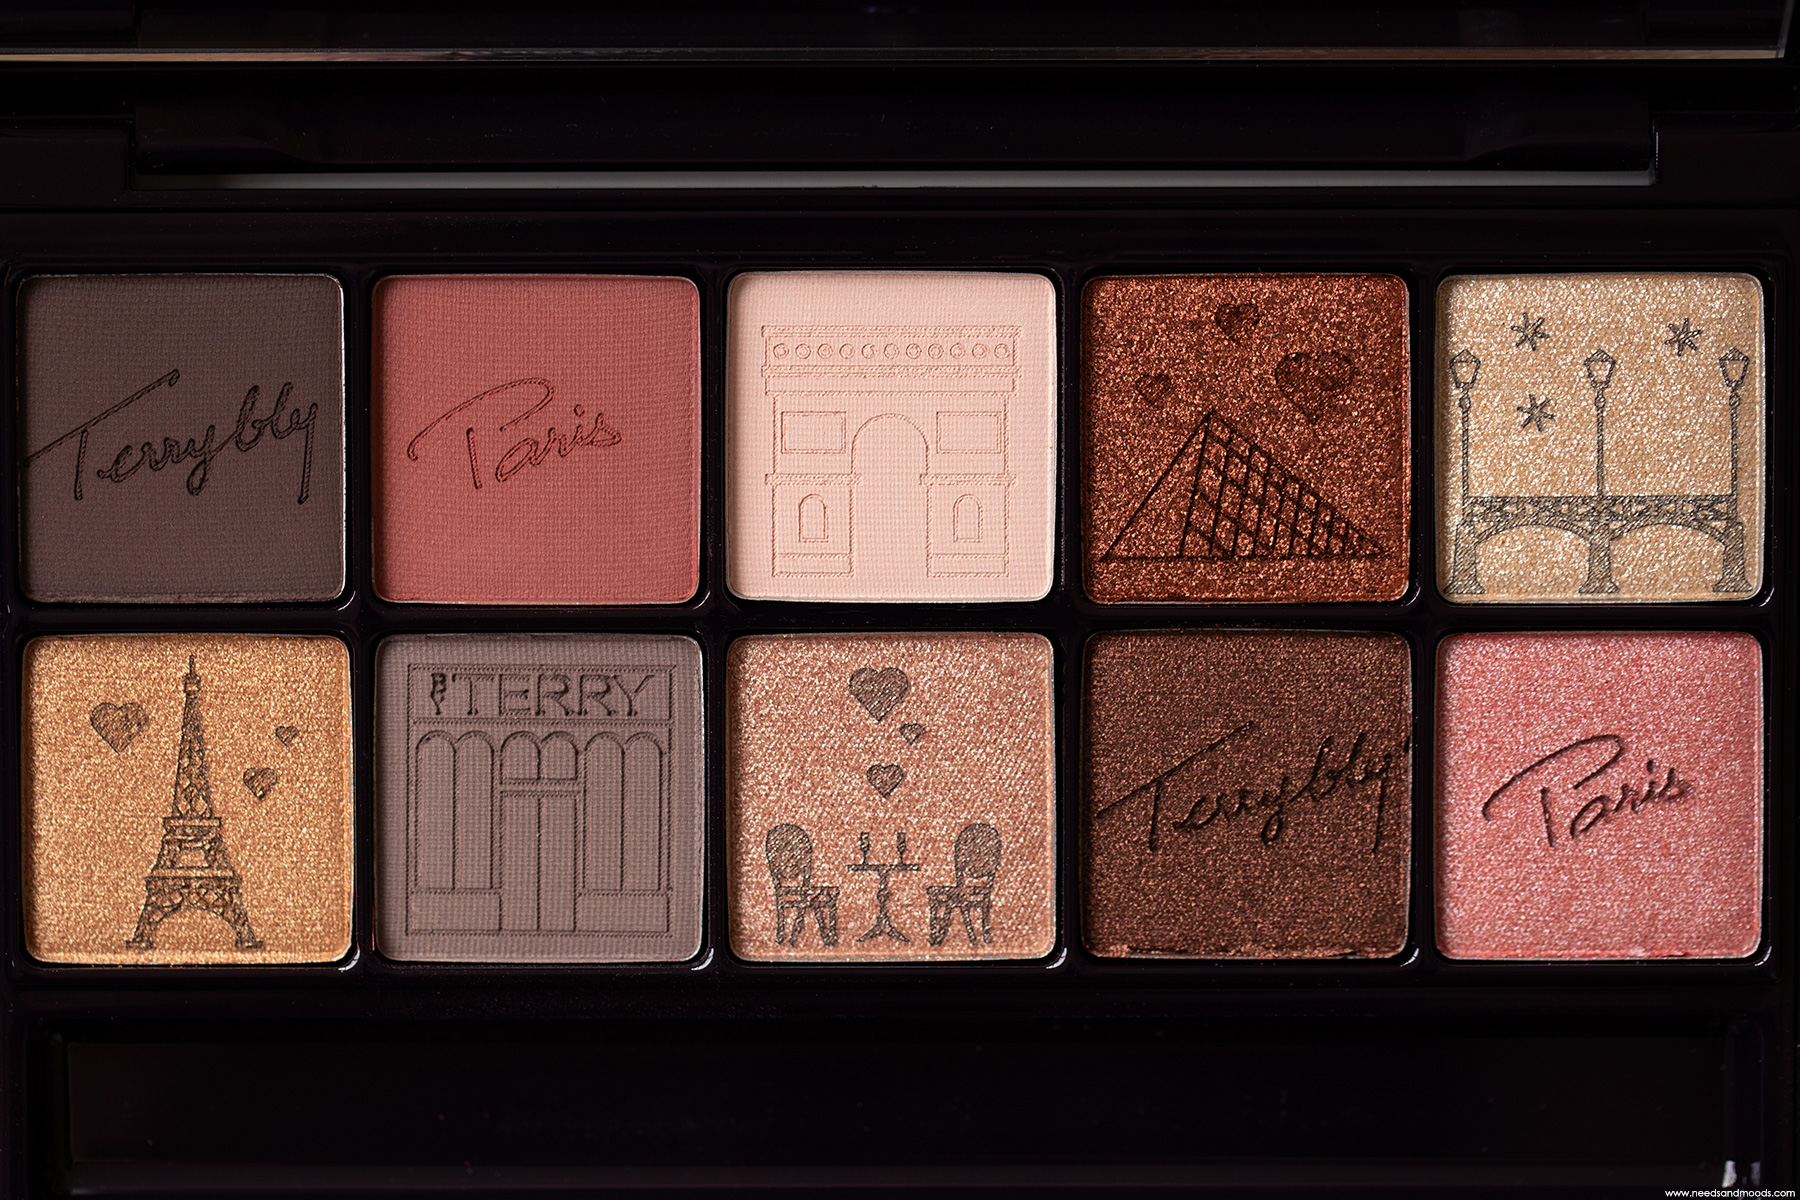 vip expert palette light by terry